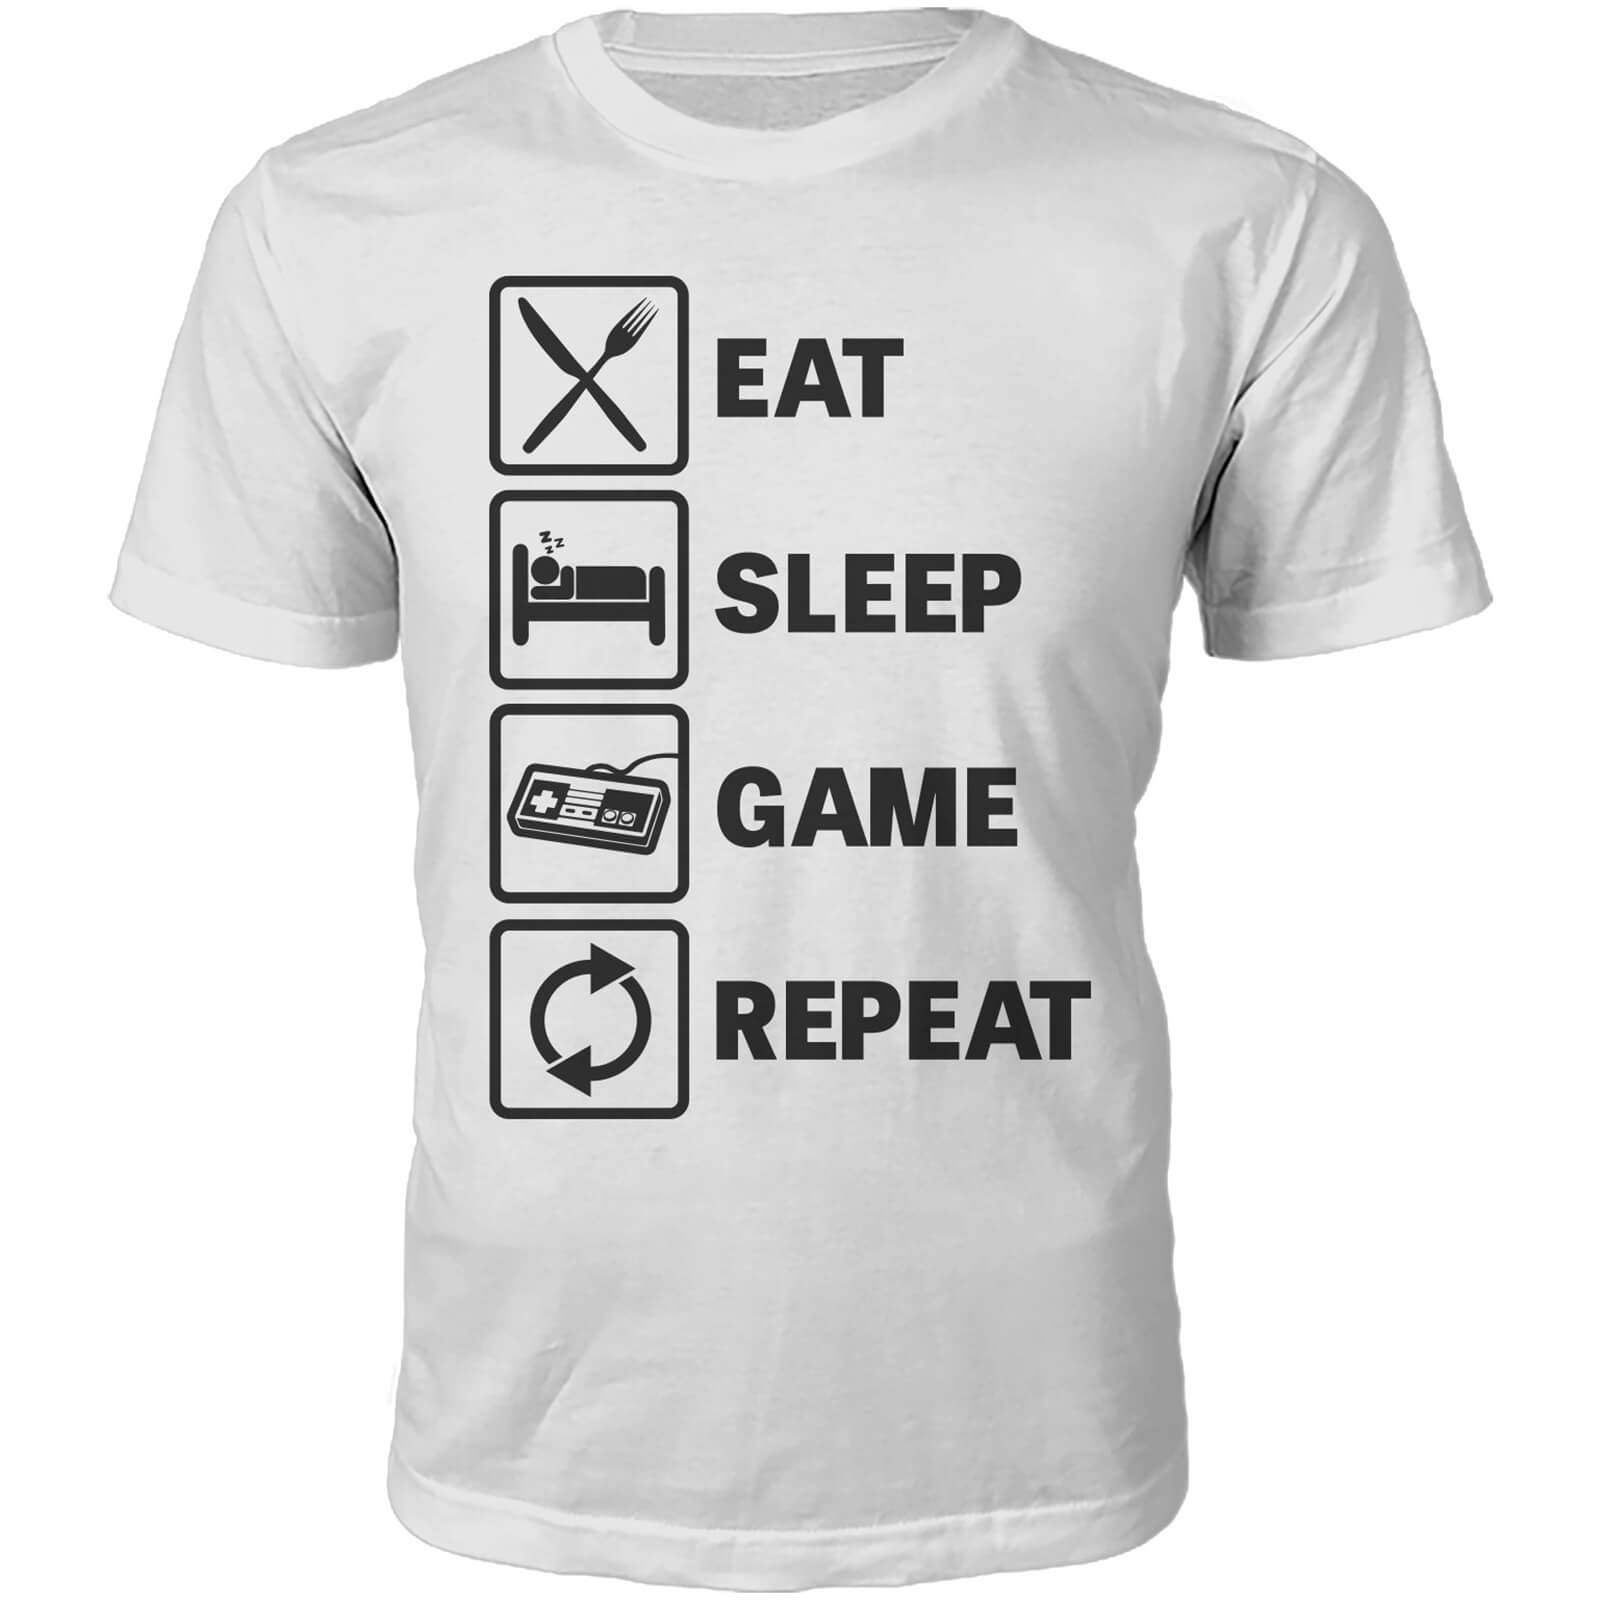 T-Shirt Unisexe Witness Eat Sleep Game Repeat -Blanc